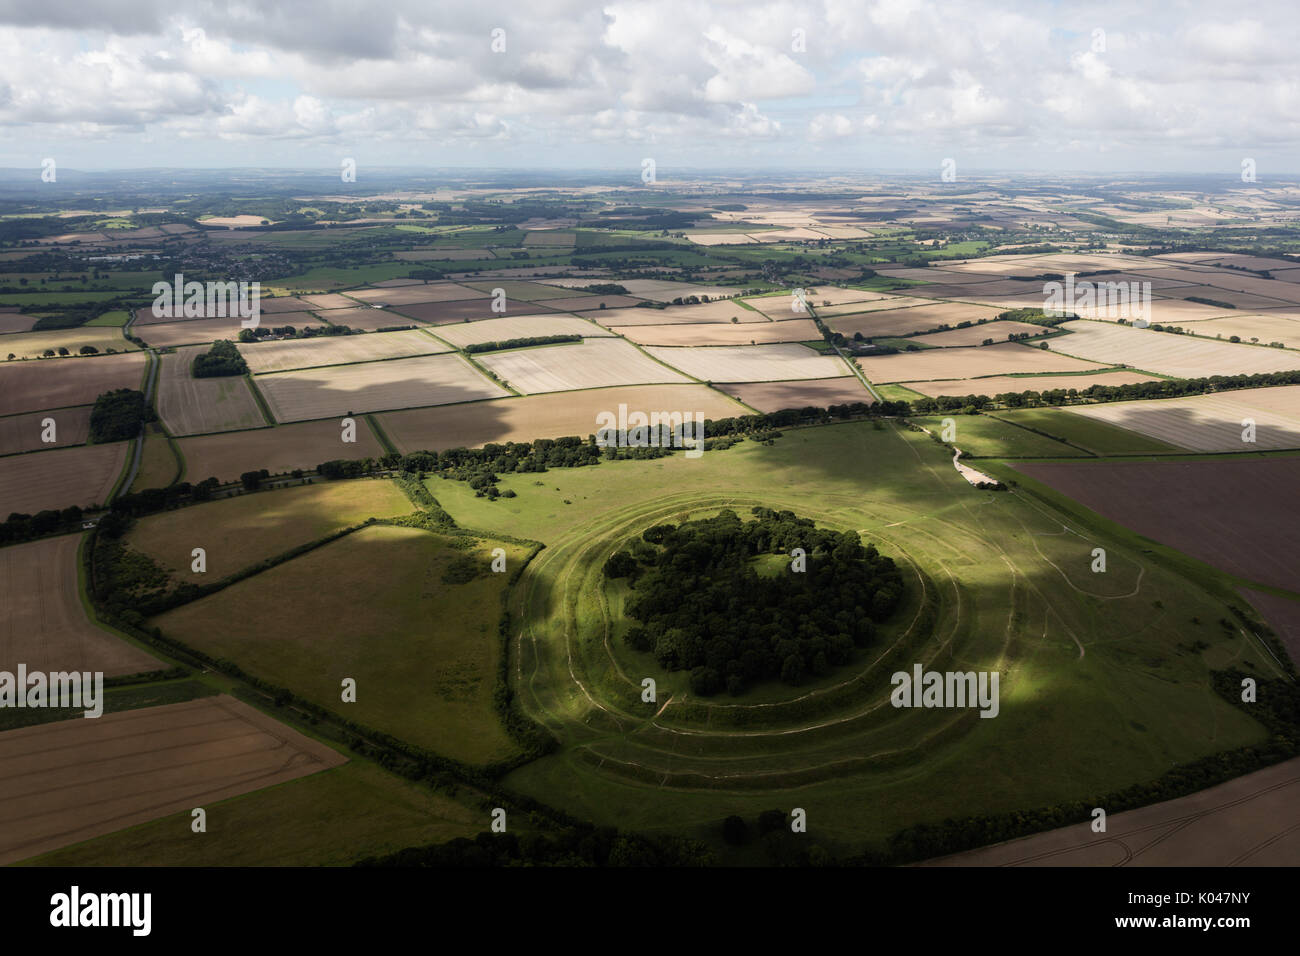 An aerial photograph of a Hill Fort in Southern England - Stock Image